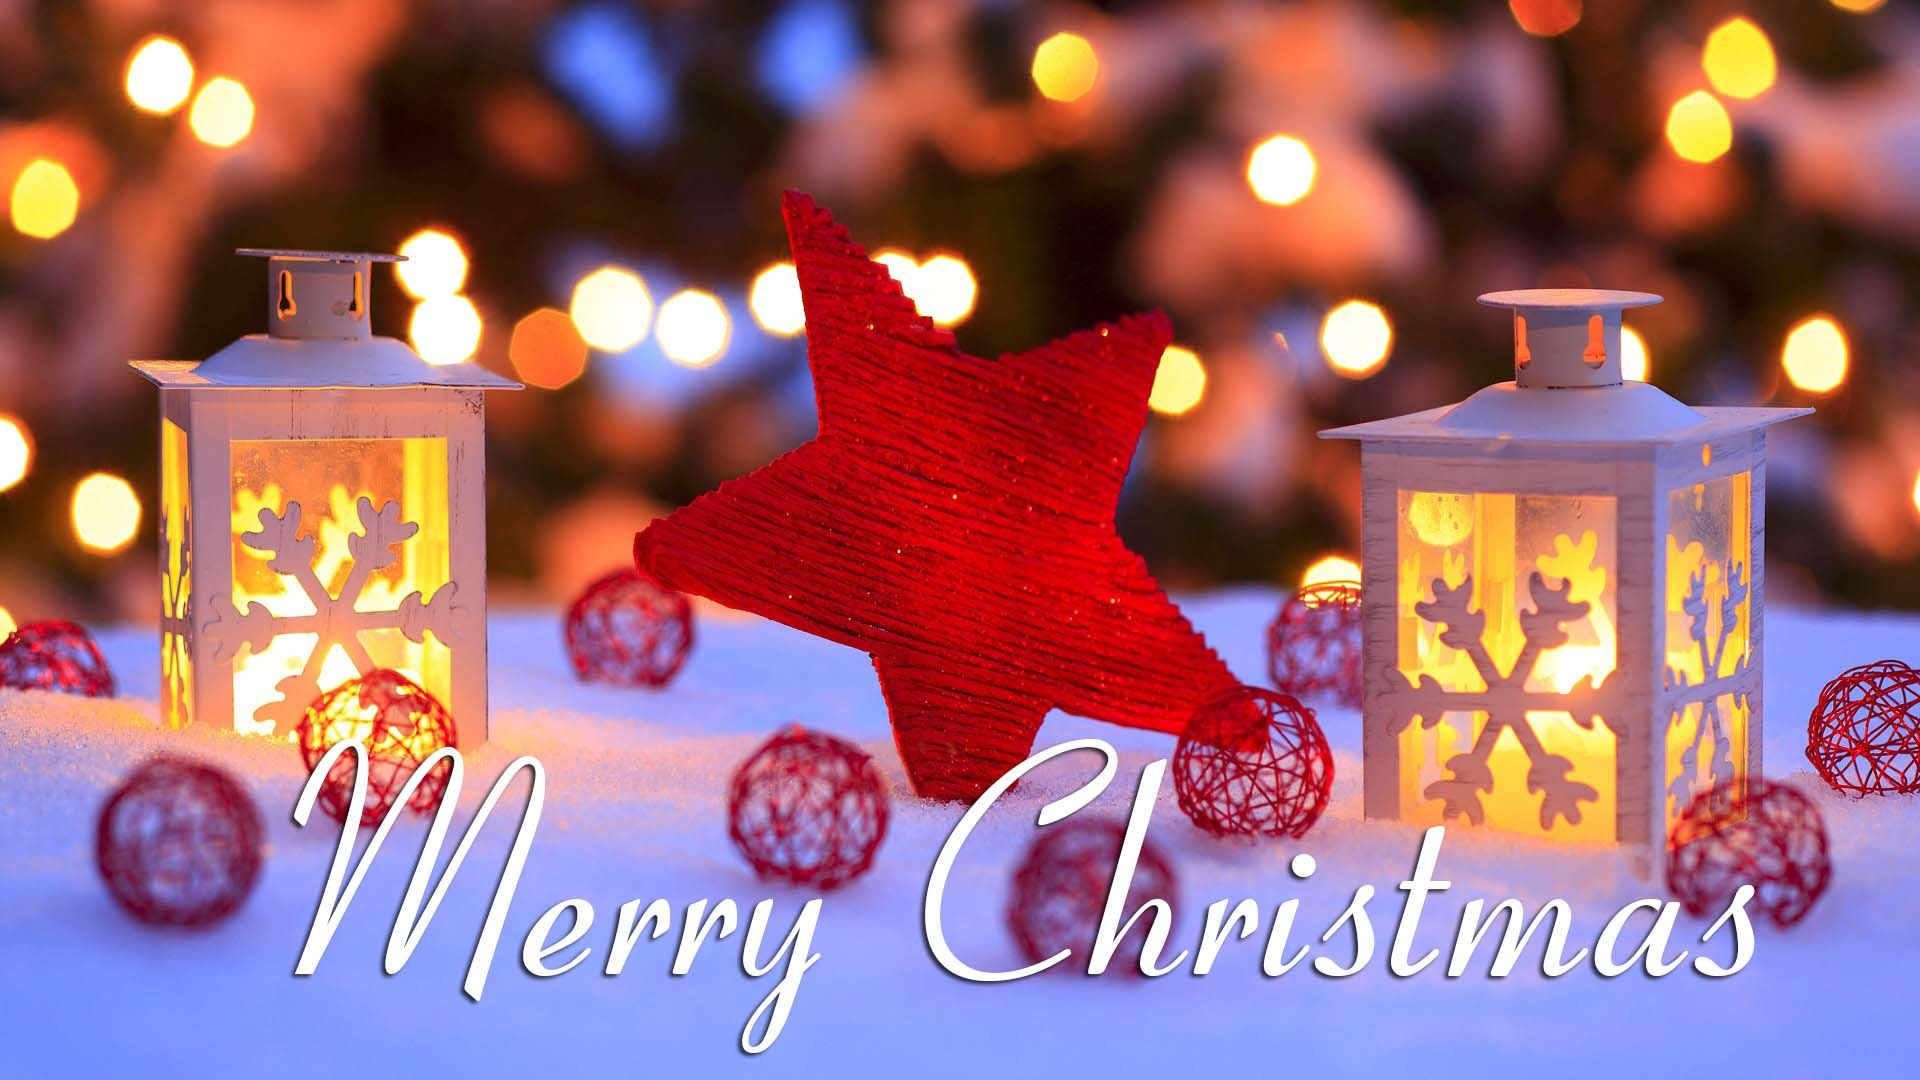 Download Best Hd Merry Christmas Wallpapers Merry Christmas Wallpaper Merry Christmas Images Merry Christmas Pictures Desktop christmas wallpaper hd